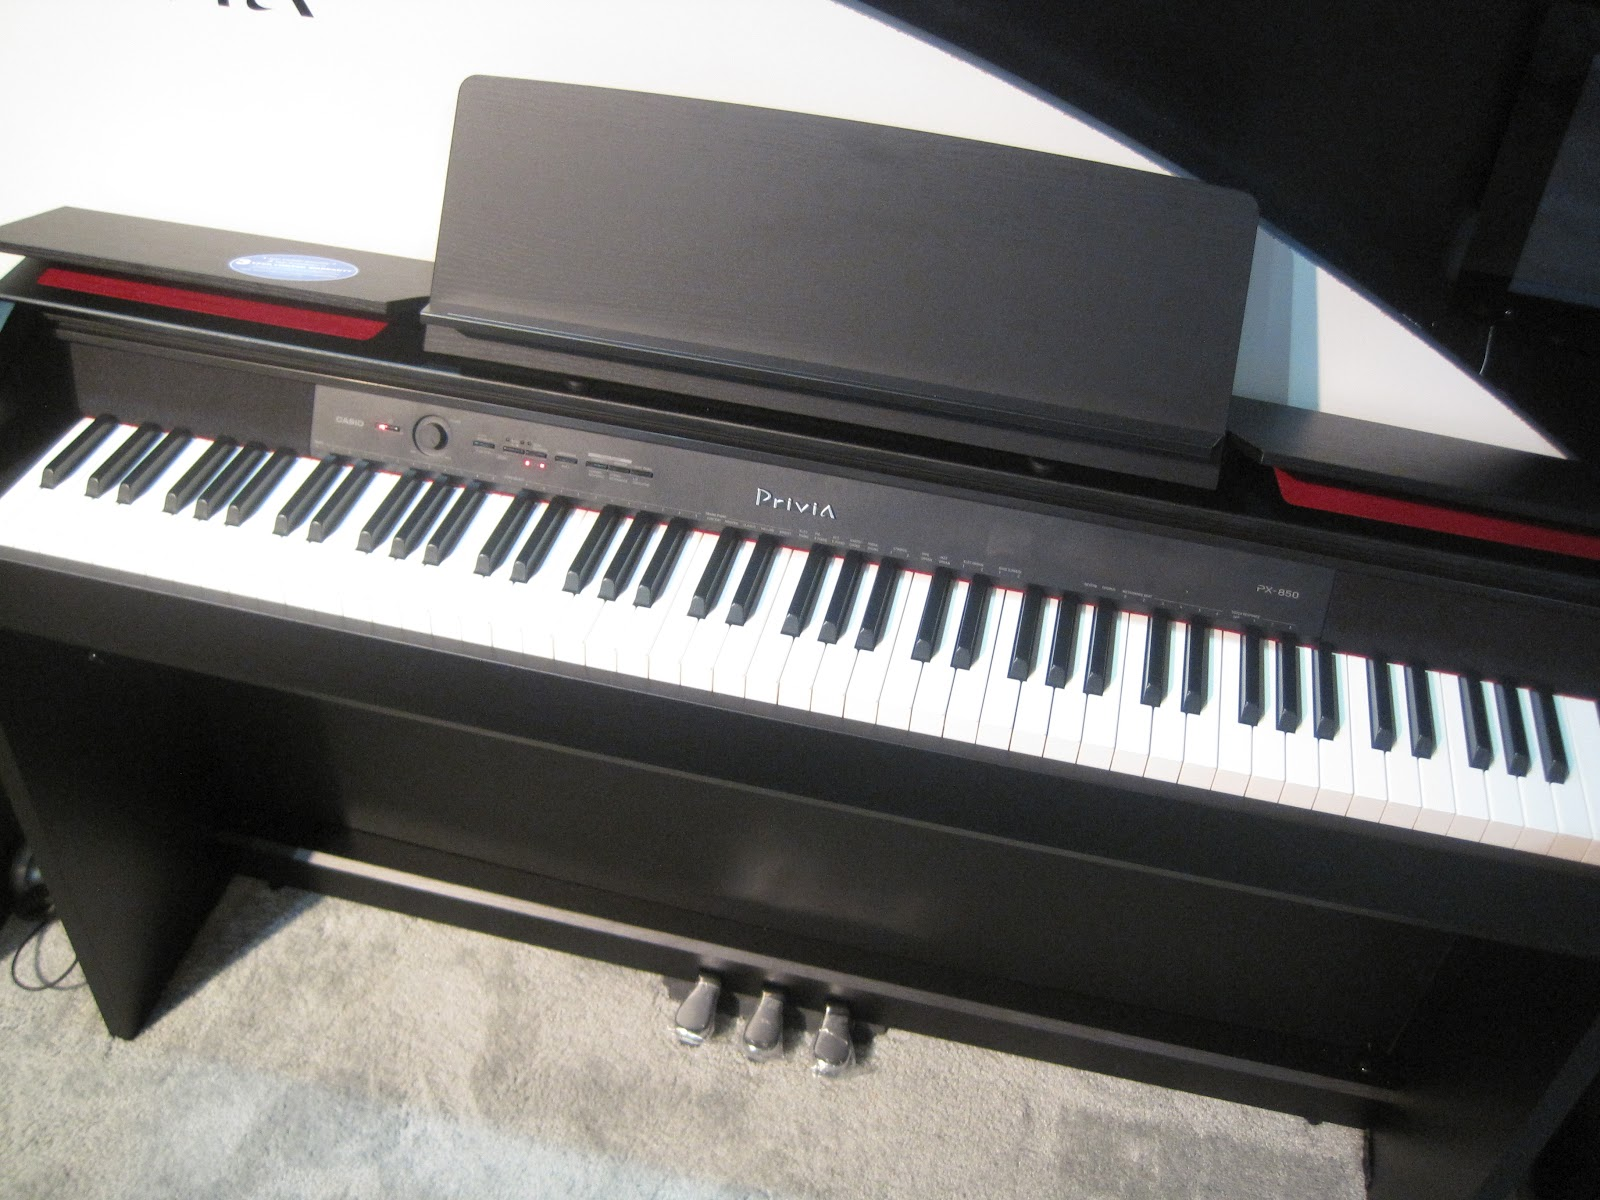 az piano reviews used digital pianos should you buy one or not. Black Bedroom Furniture Sets. Home Design Ideas